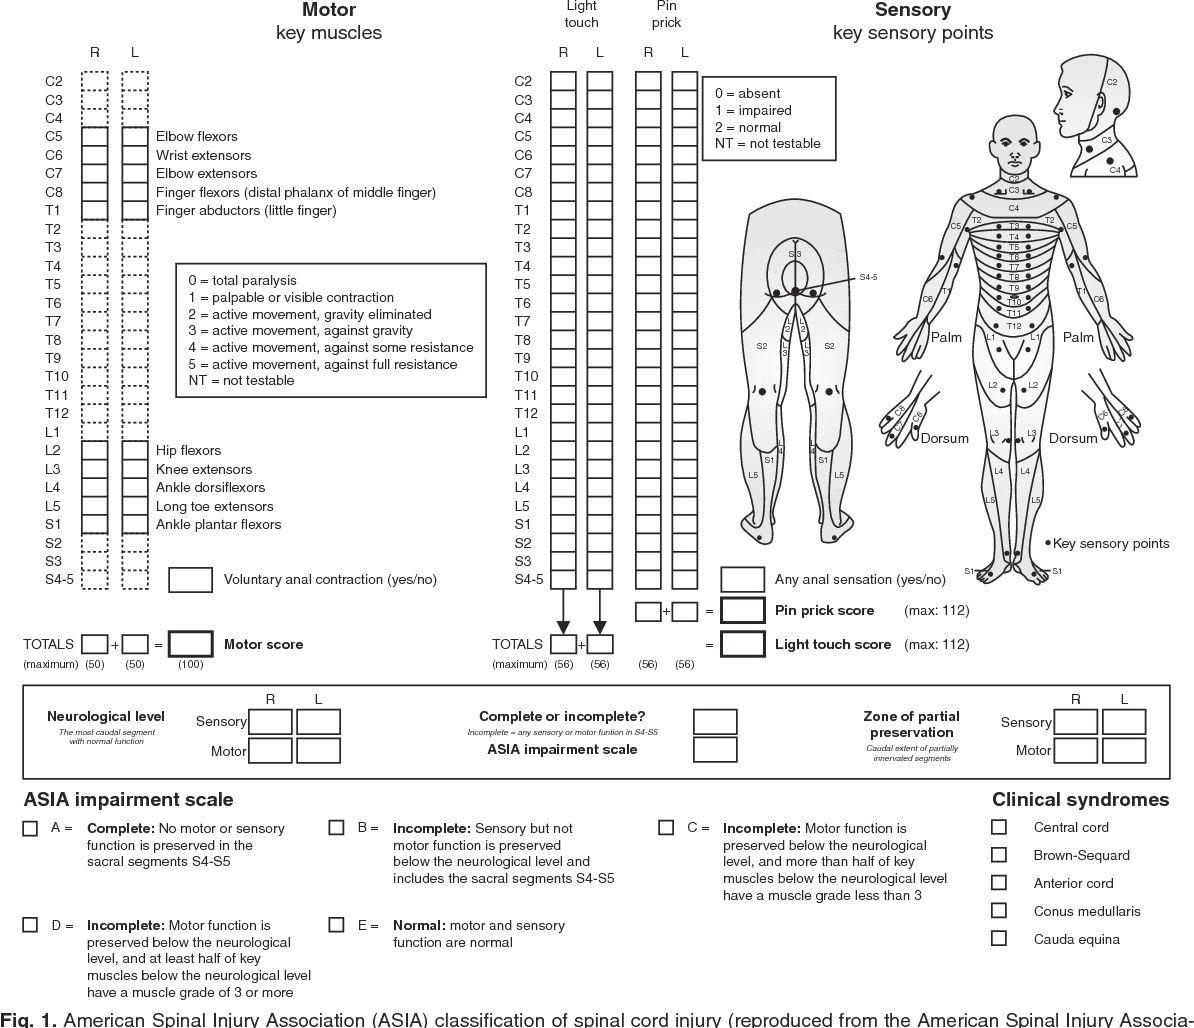 Exercise Recommendations for Individuals with Spinal Cord